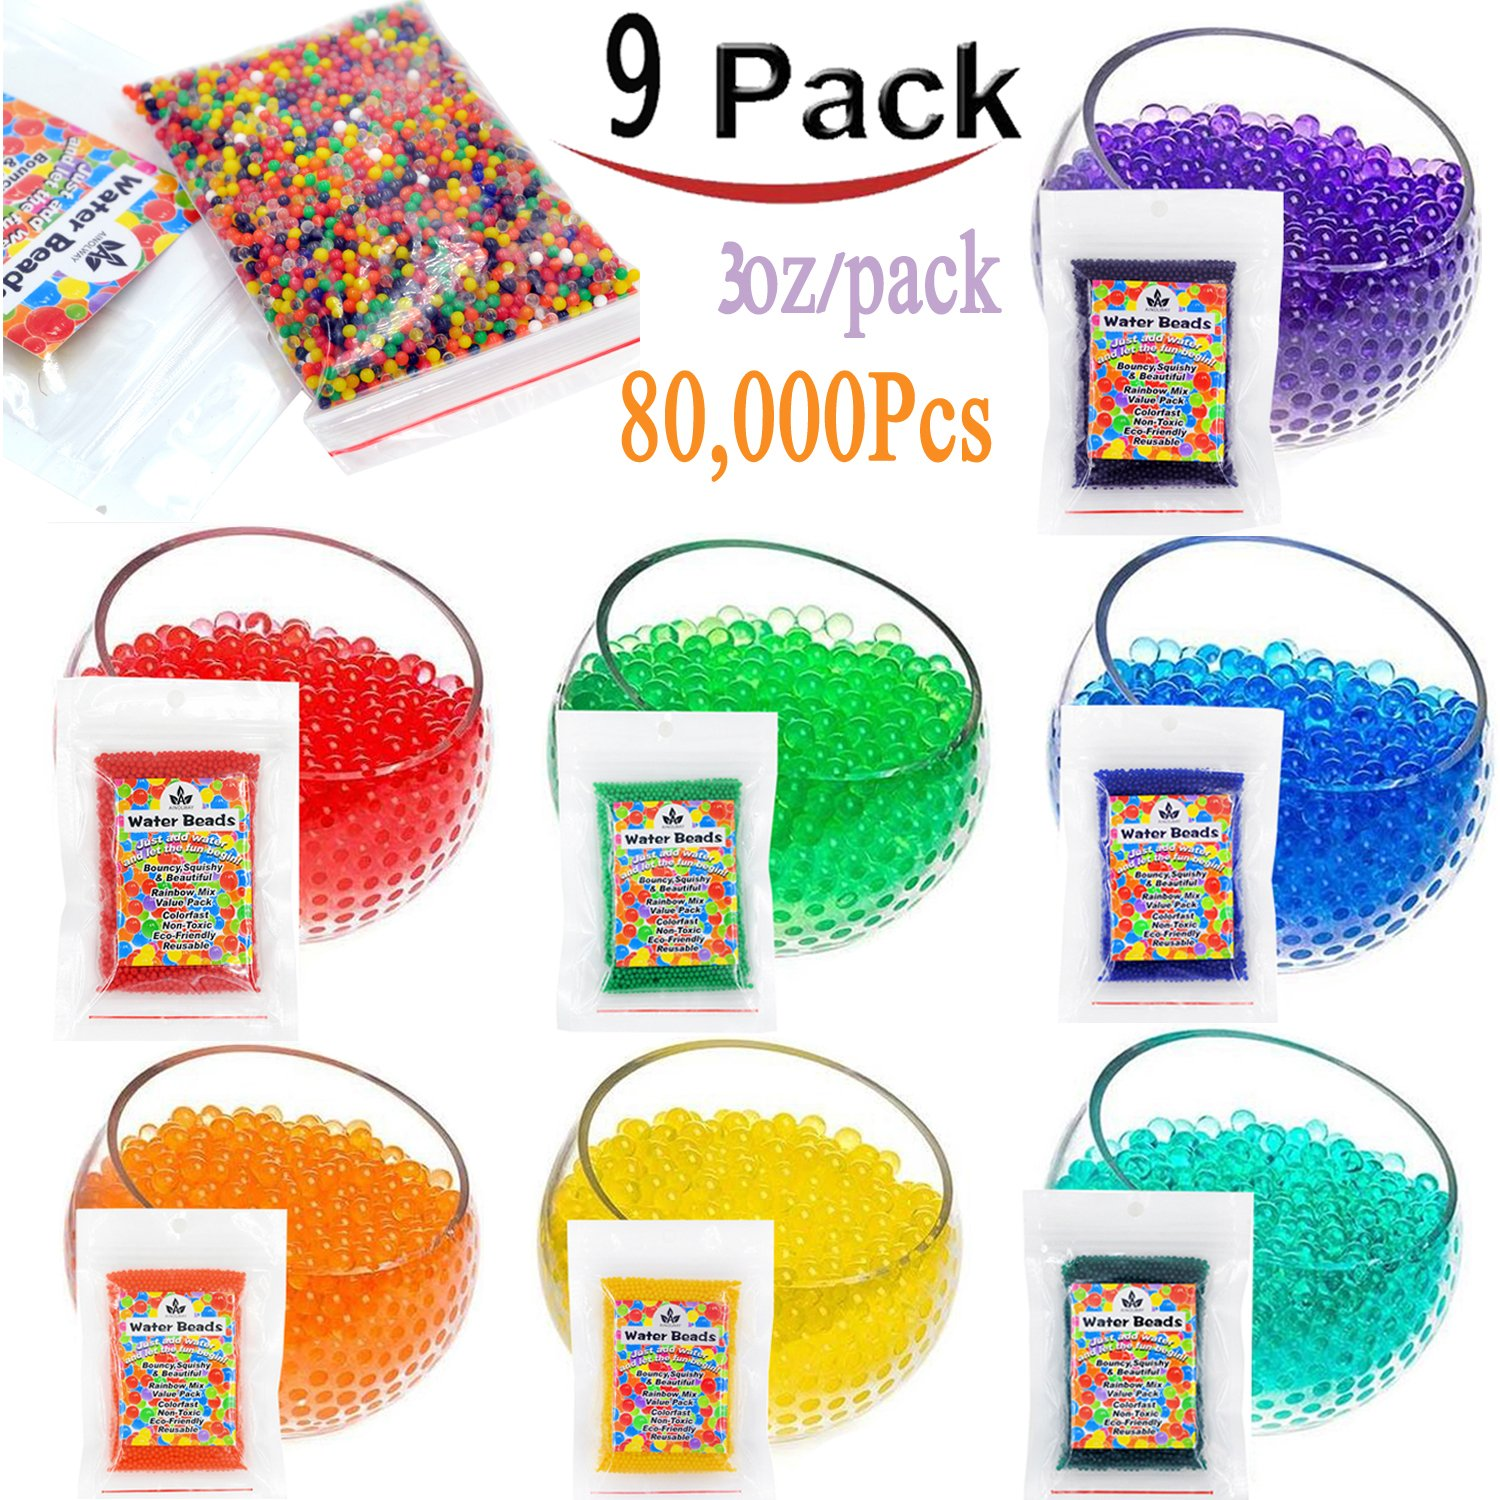 AINOLWAY Water Beads 30 OZ 80 000 Beads Crystal Water Gel Bead for Kids Sensory Toys Vase Filler Home Décor Transparent Jelly Pearls 9 Pack Water Bead